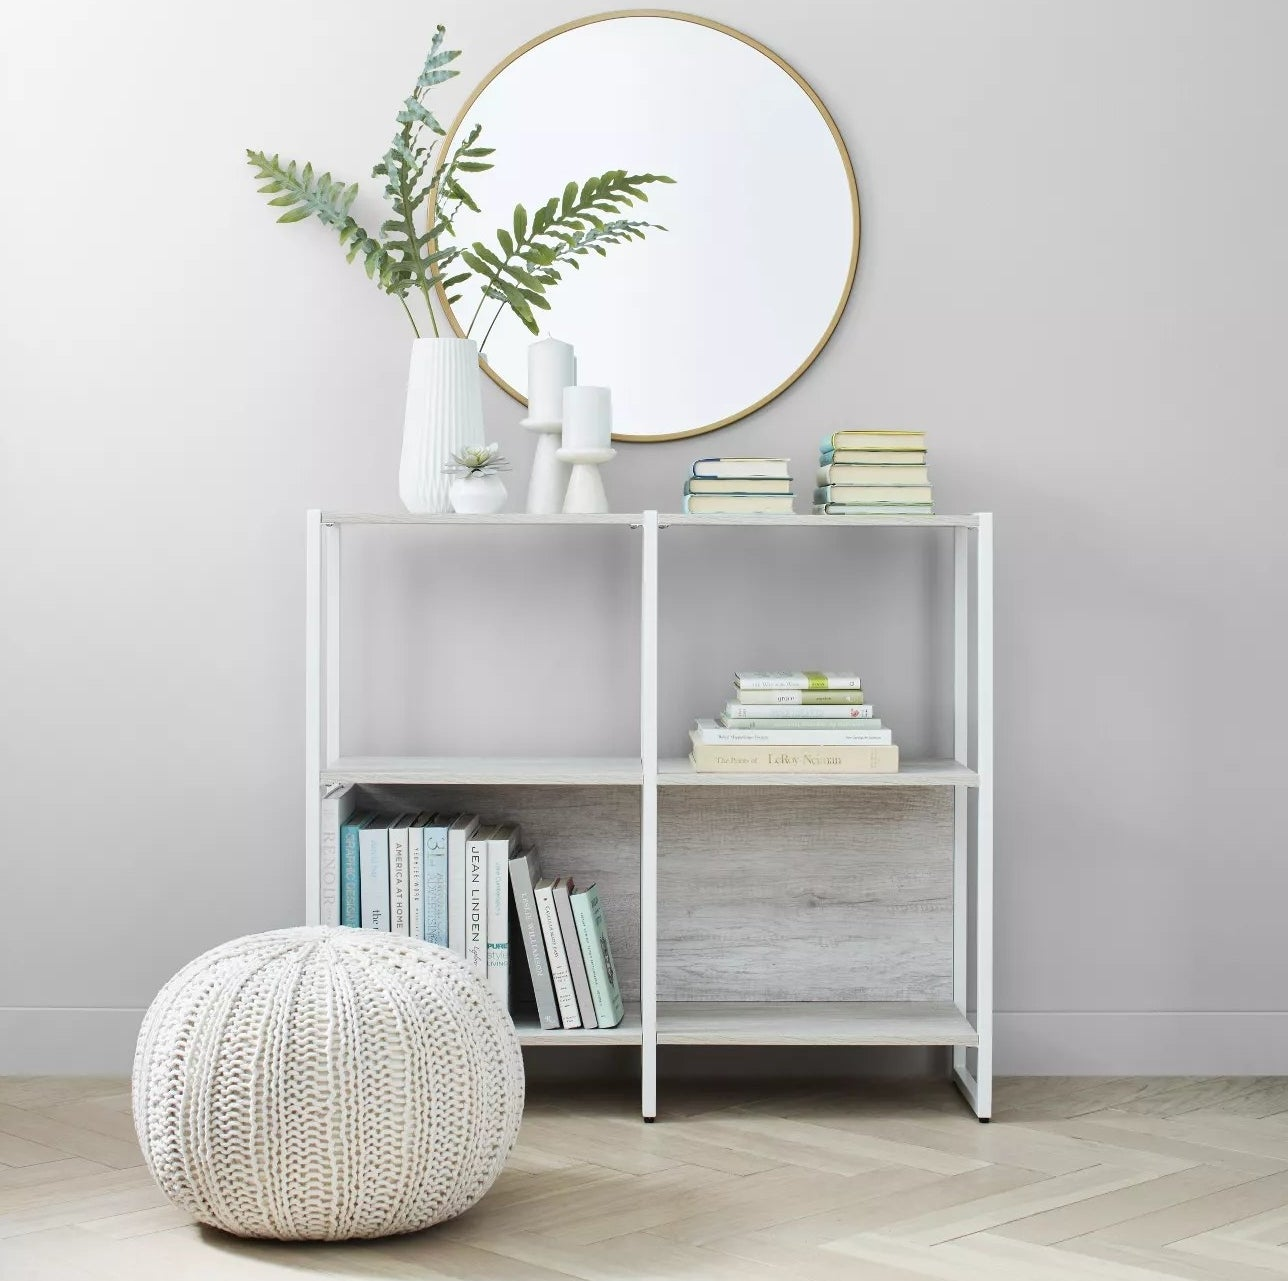 The white and gray bookcases